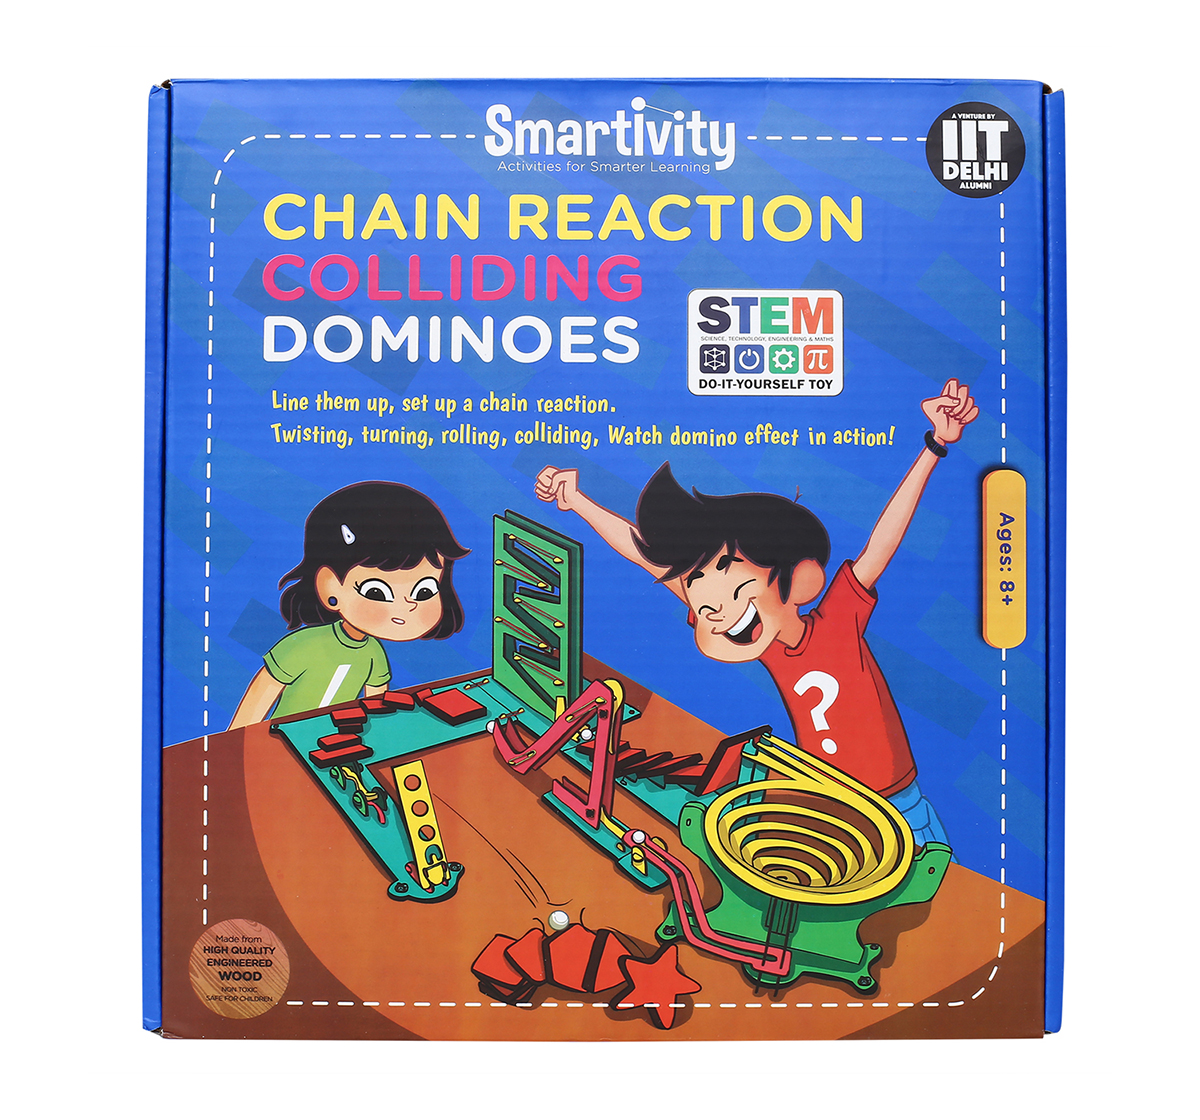 Smartivity | Smartivity Chain Reaction Colliding Dominoes: Stem, Learning, Educational and Construction Activity Toy for Kids age 8Y+